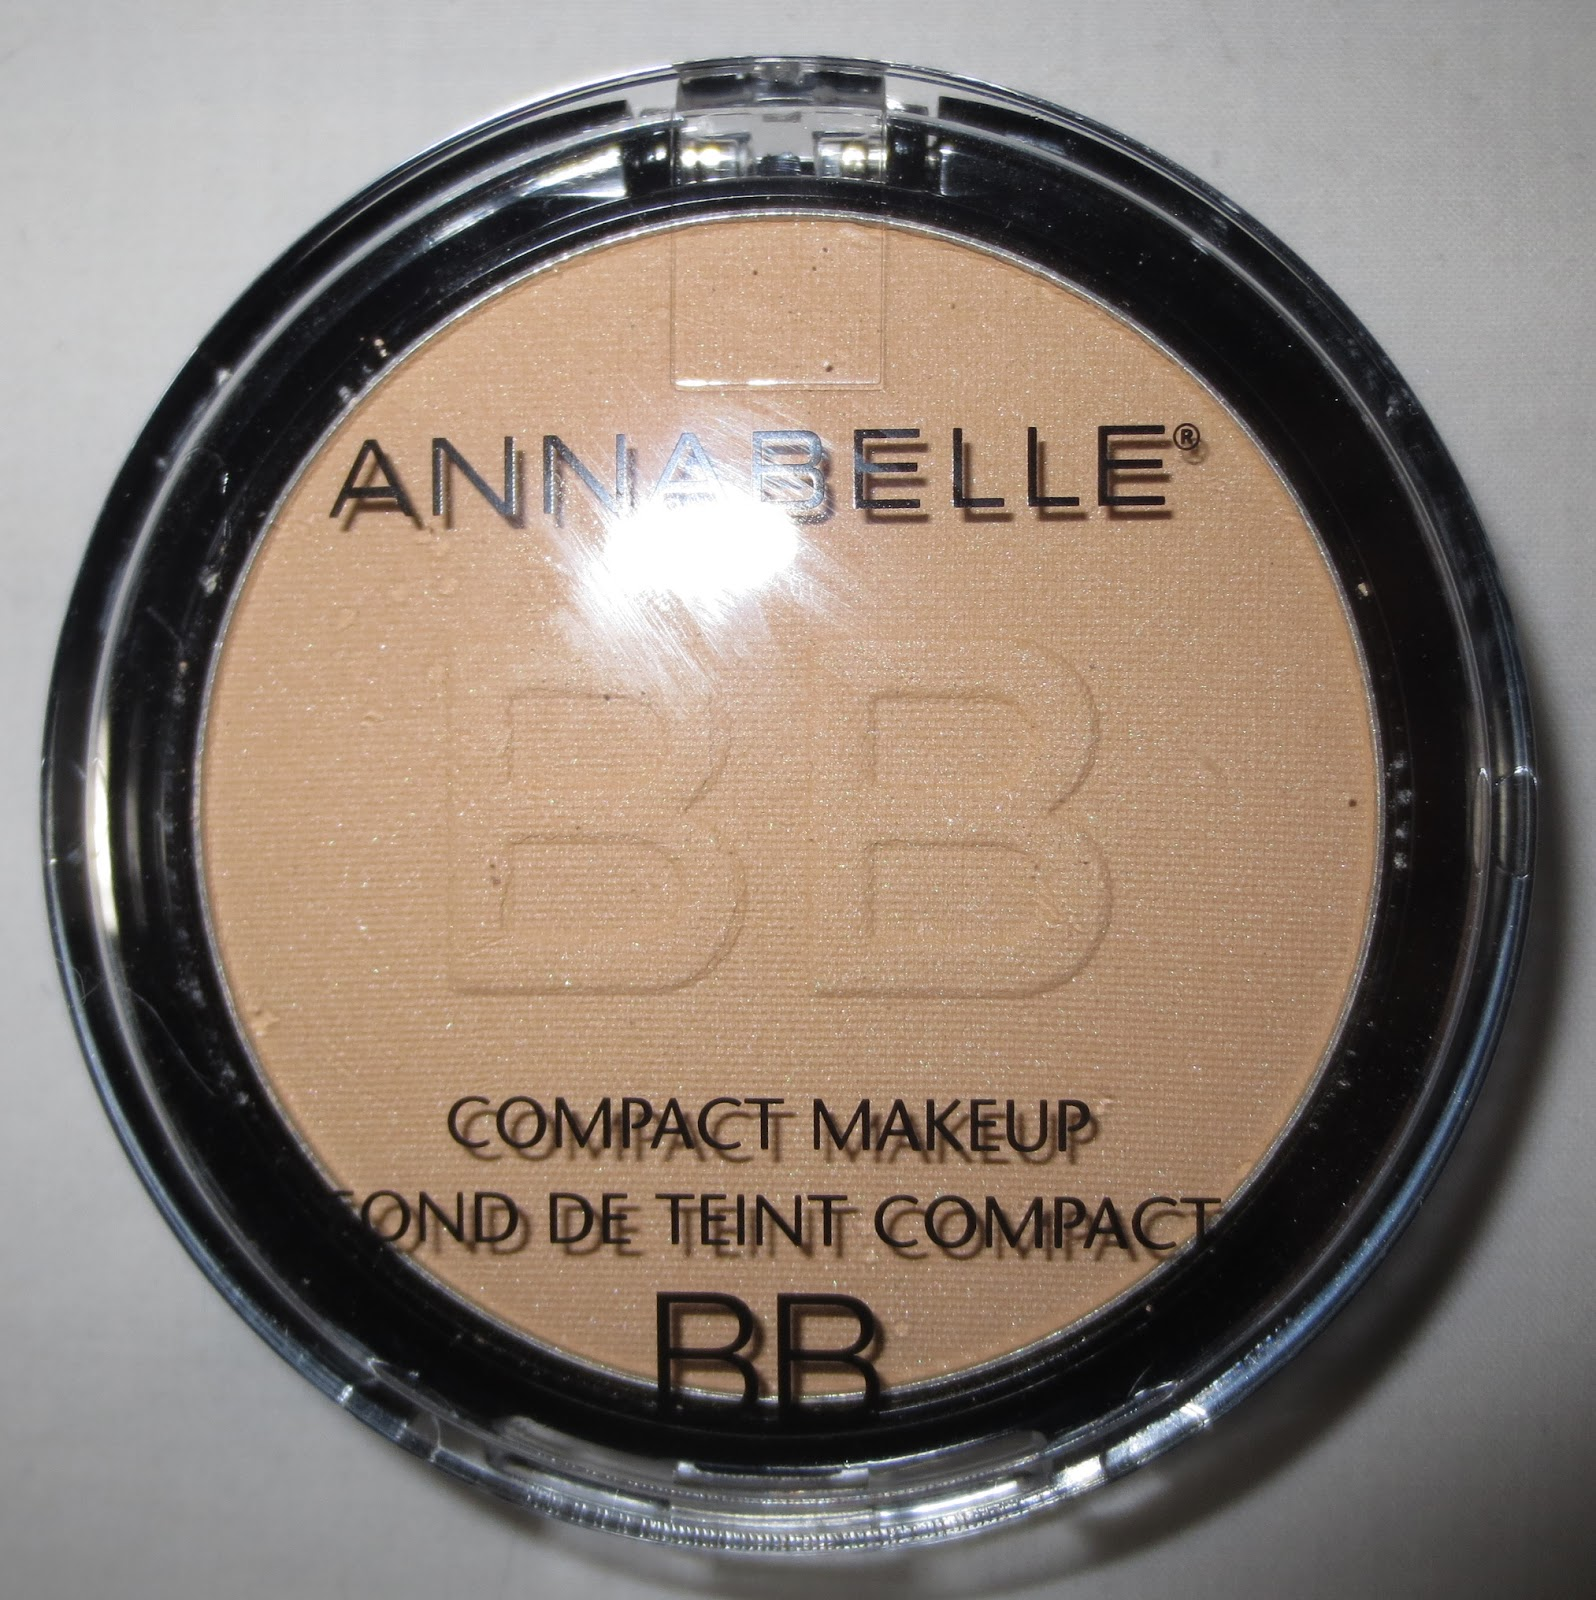 Annabelle BB Compact Makeup Packaging